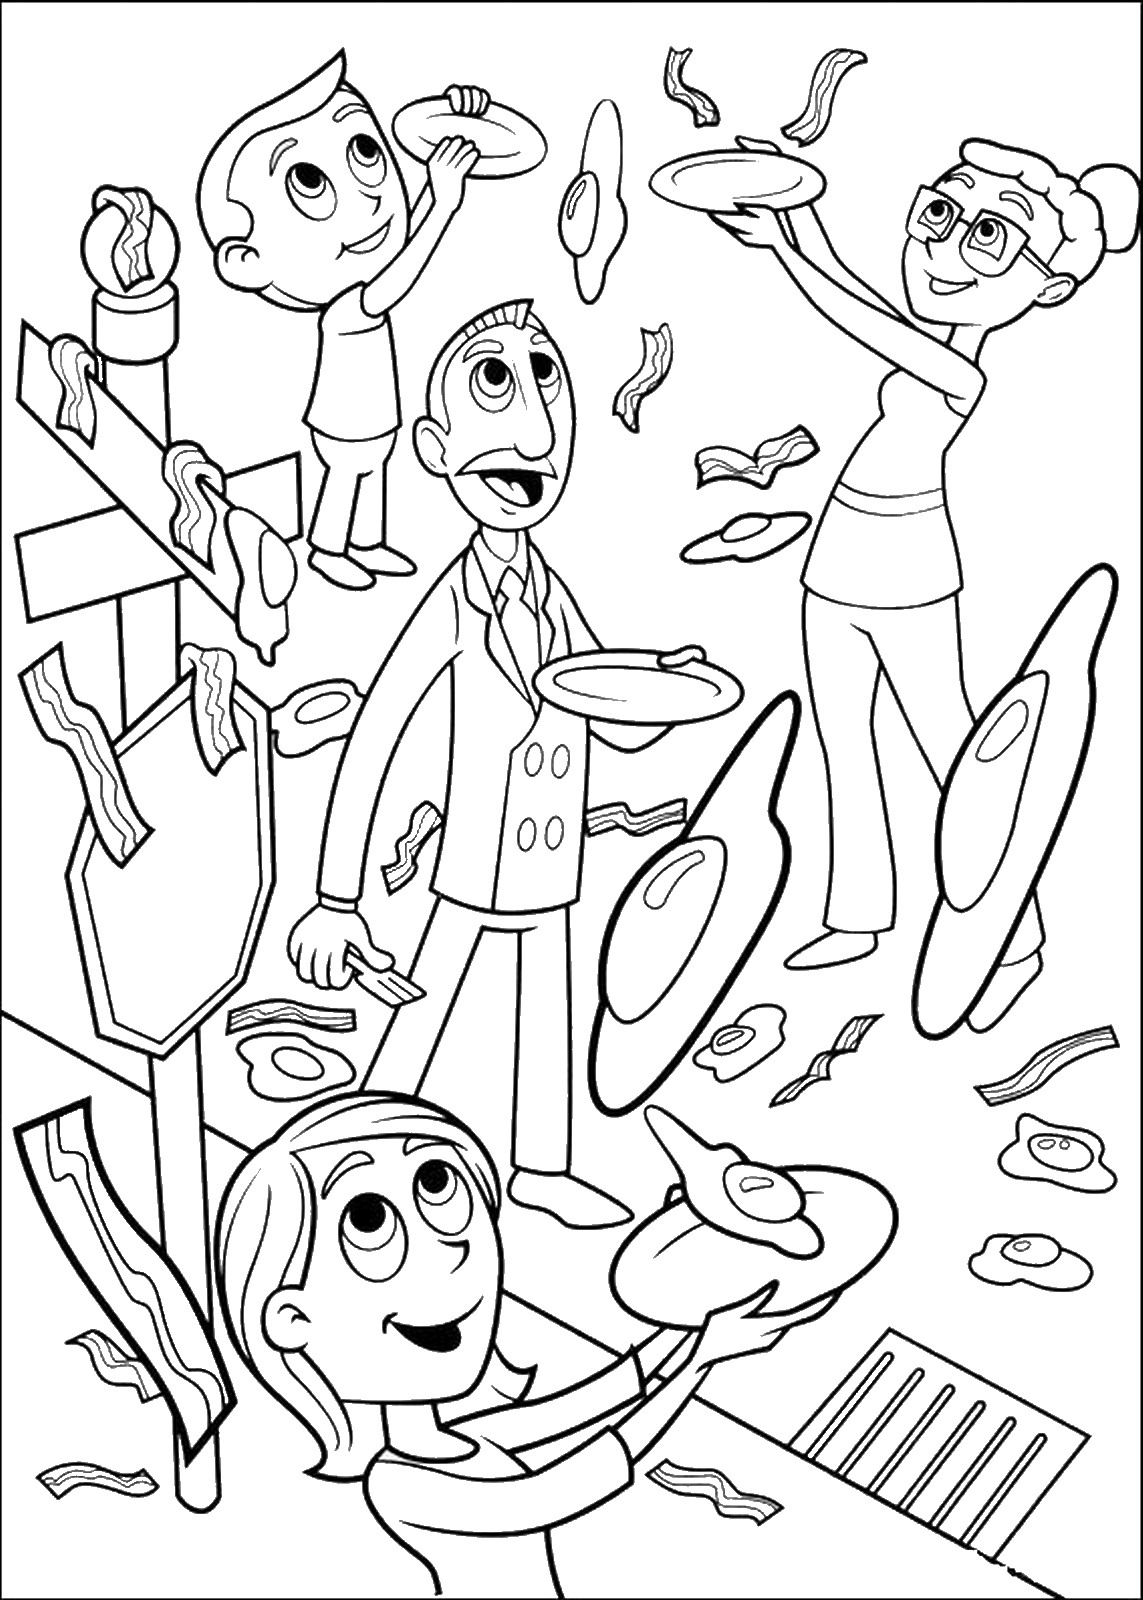 cloudy with a chance of meatballs 2 coloring pages cloudy with a chance of meatballs coloring pages meatballs with chance cloudy a 2 pages coloring of